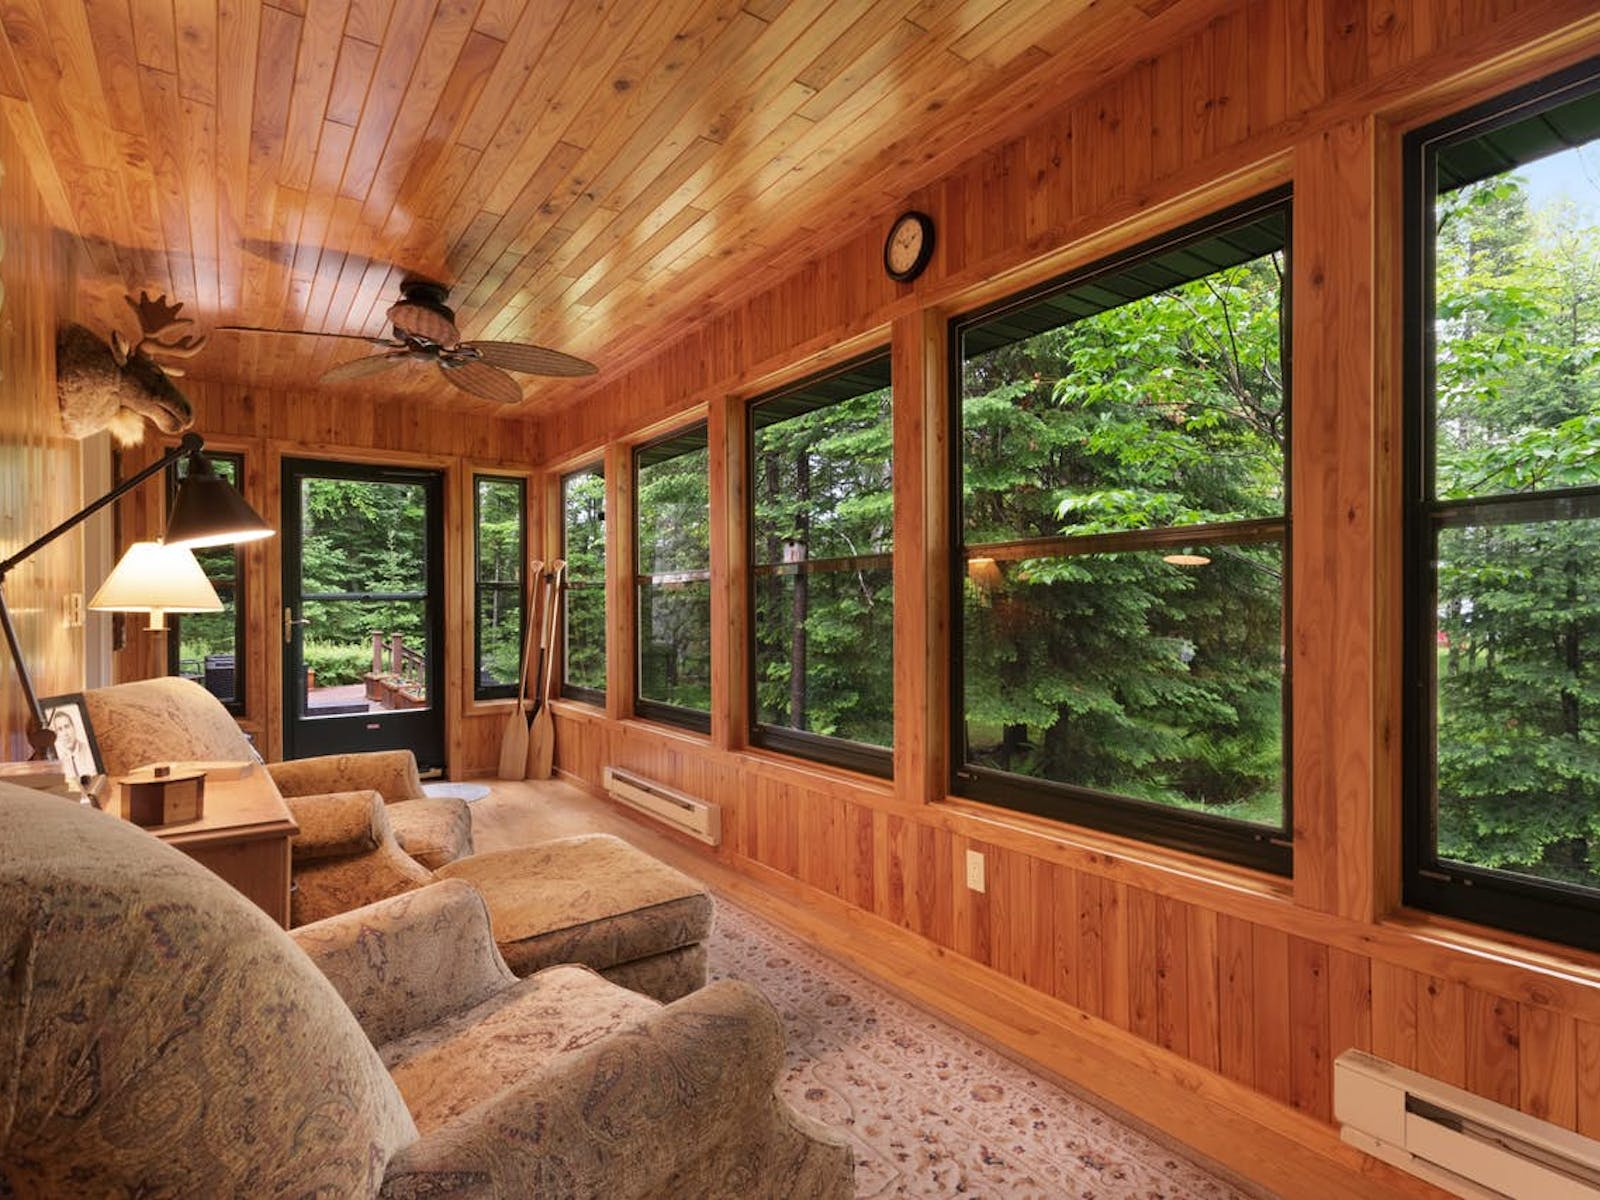 interior of vacation cabin in Rhineland, WI with comfy couches, lots of windows and forest views